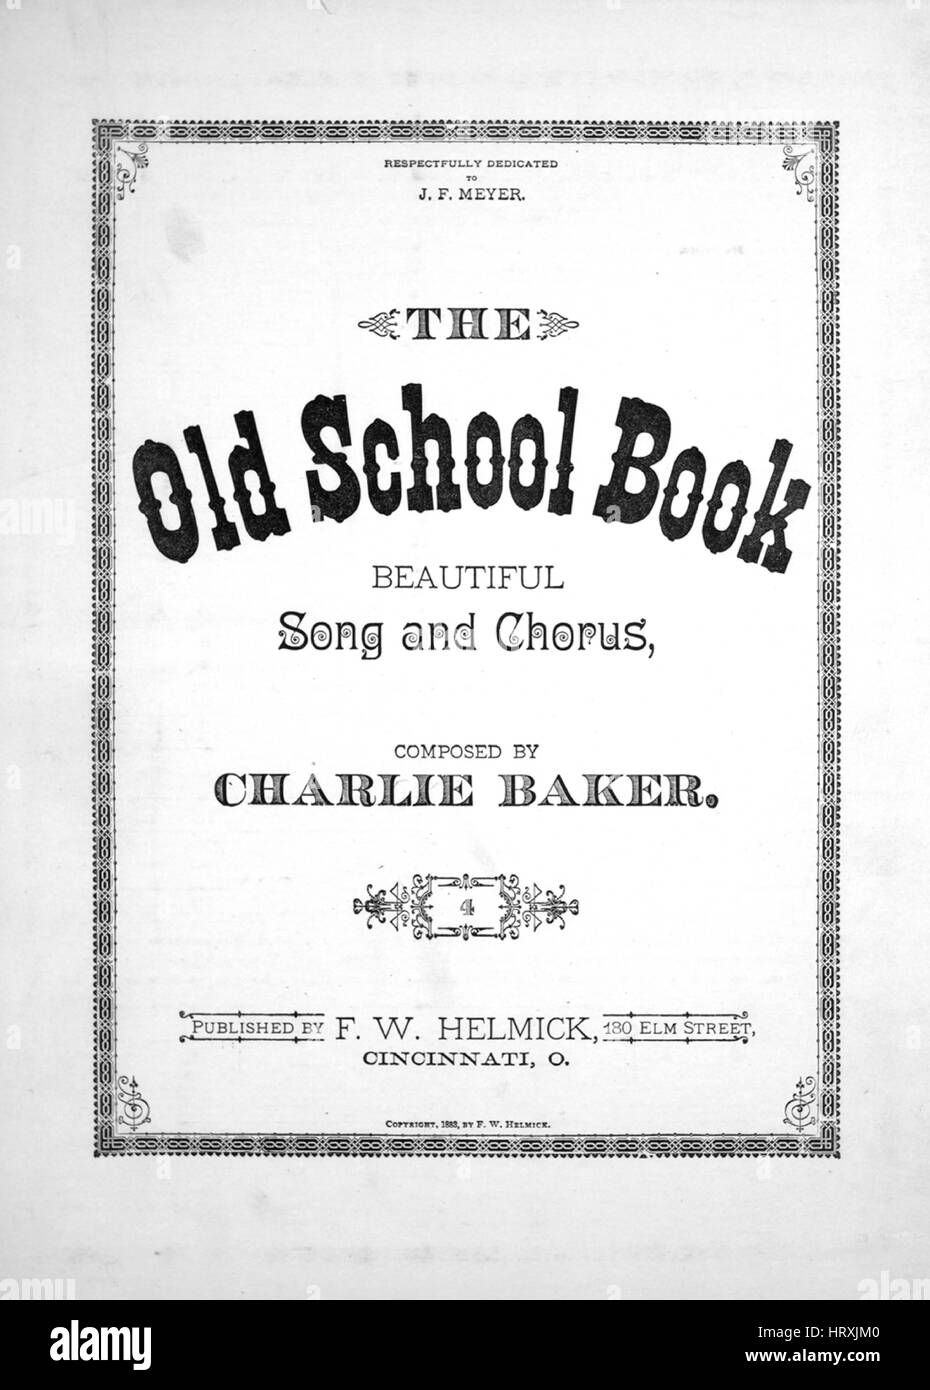 Sheet music cover image of the song 'The Old School Book Beautiful Song and Chorus', with original authorship - Stock Image